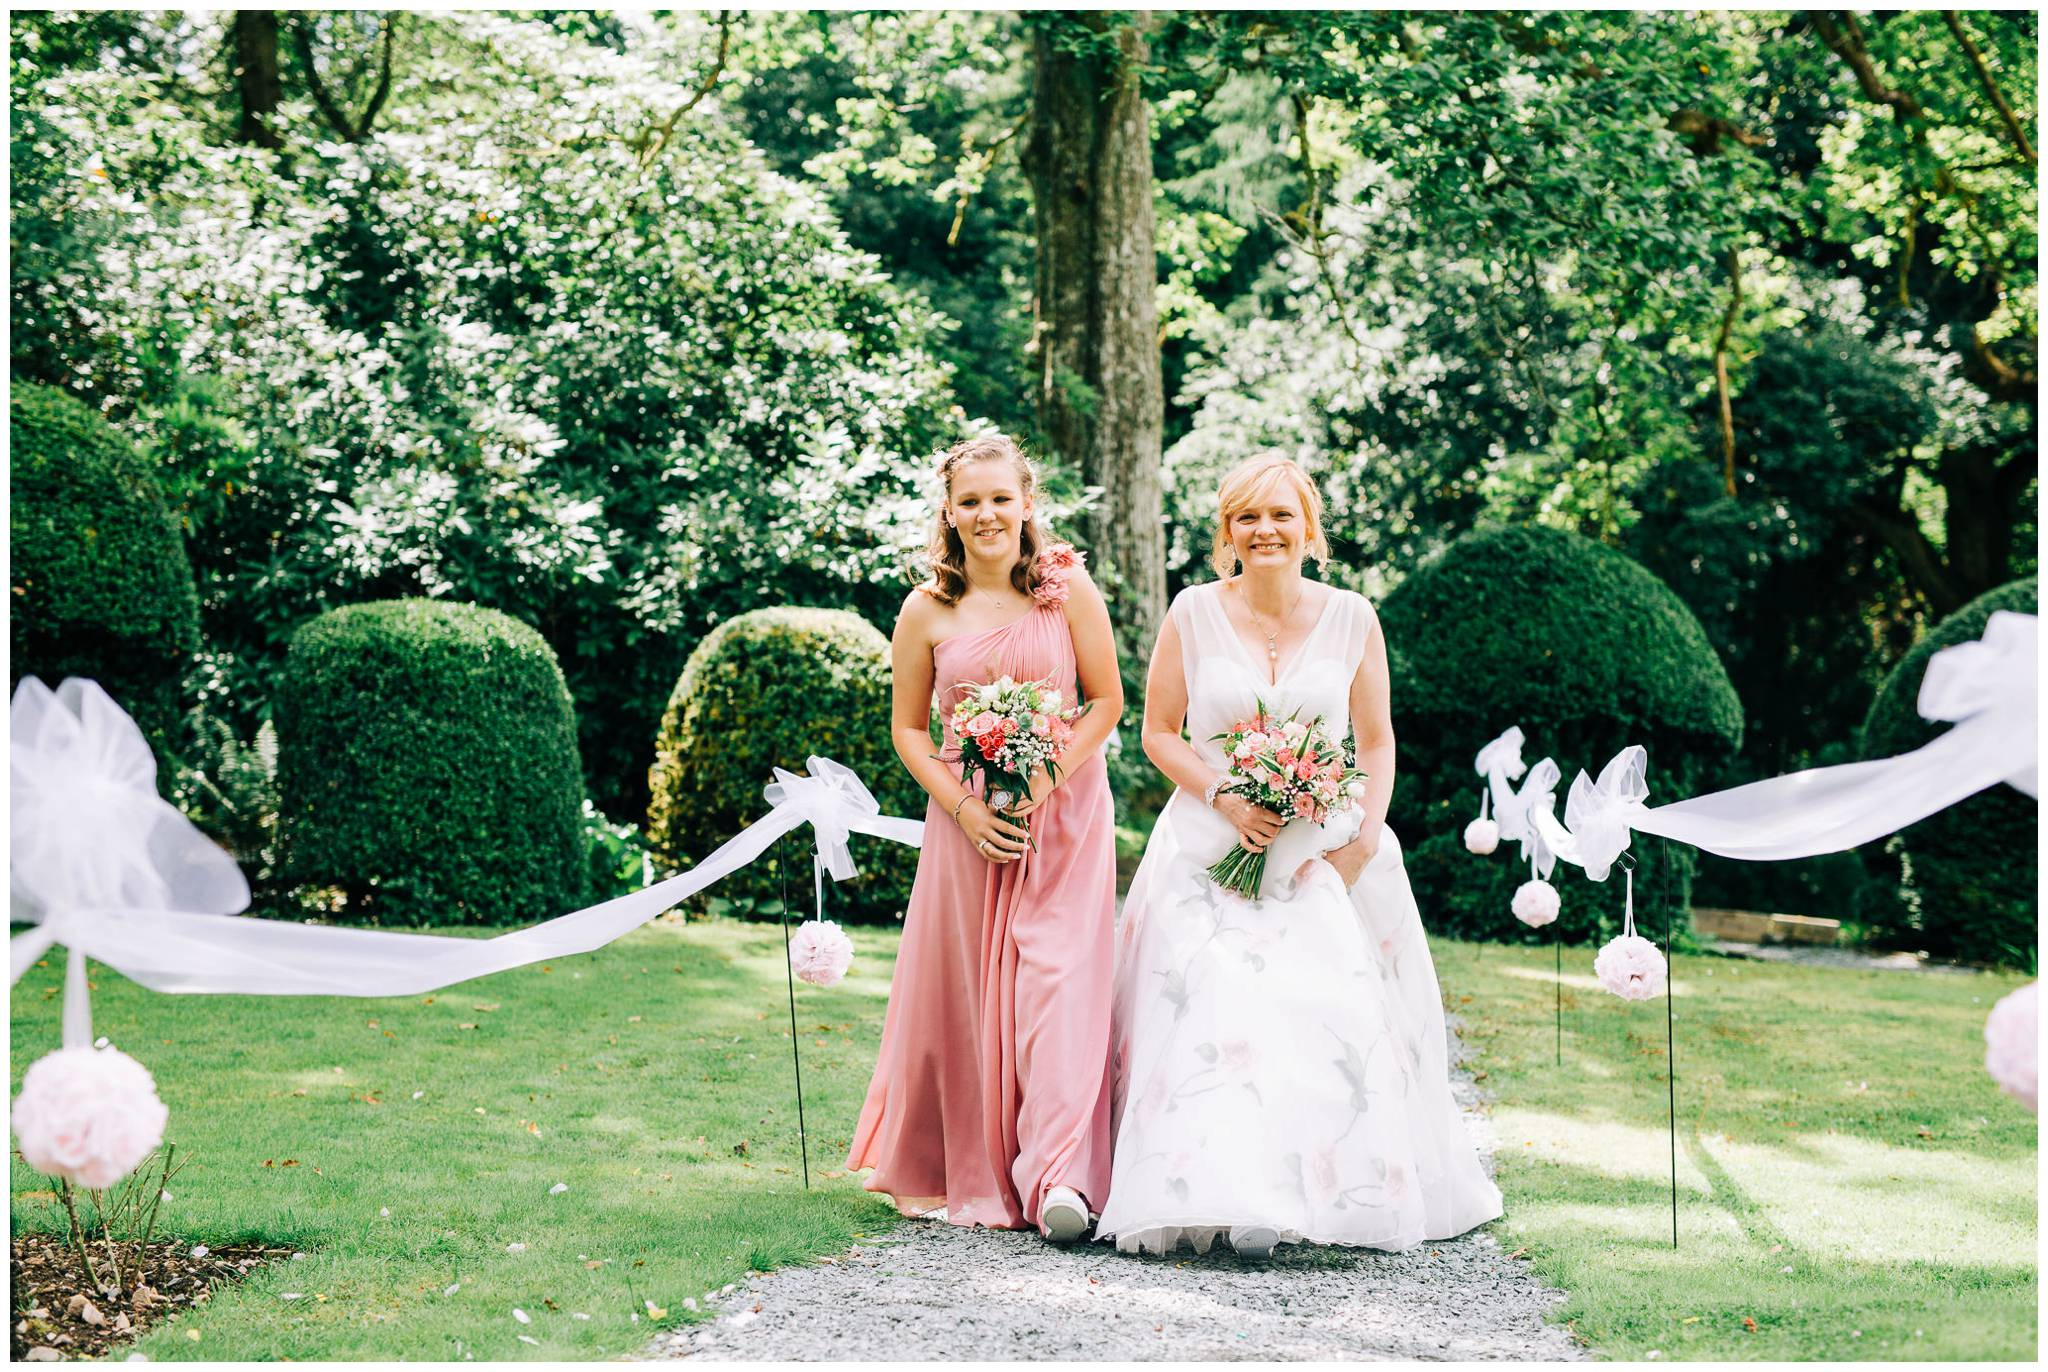 Natural wedding photography Manchester - Clare Robinson Photography_0177.jpg